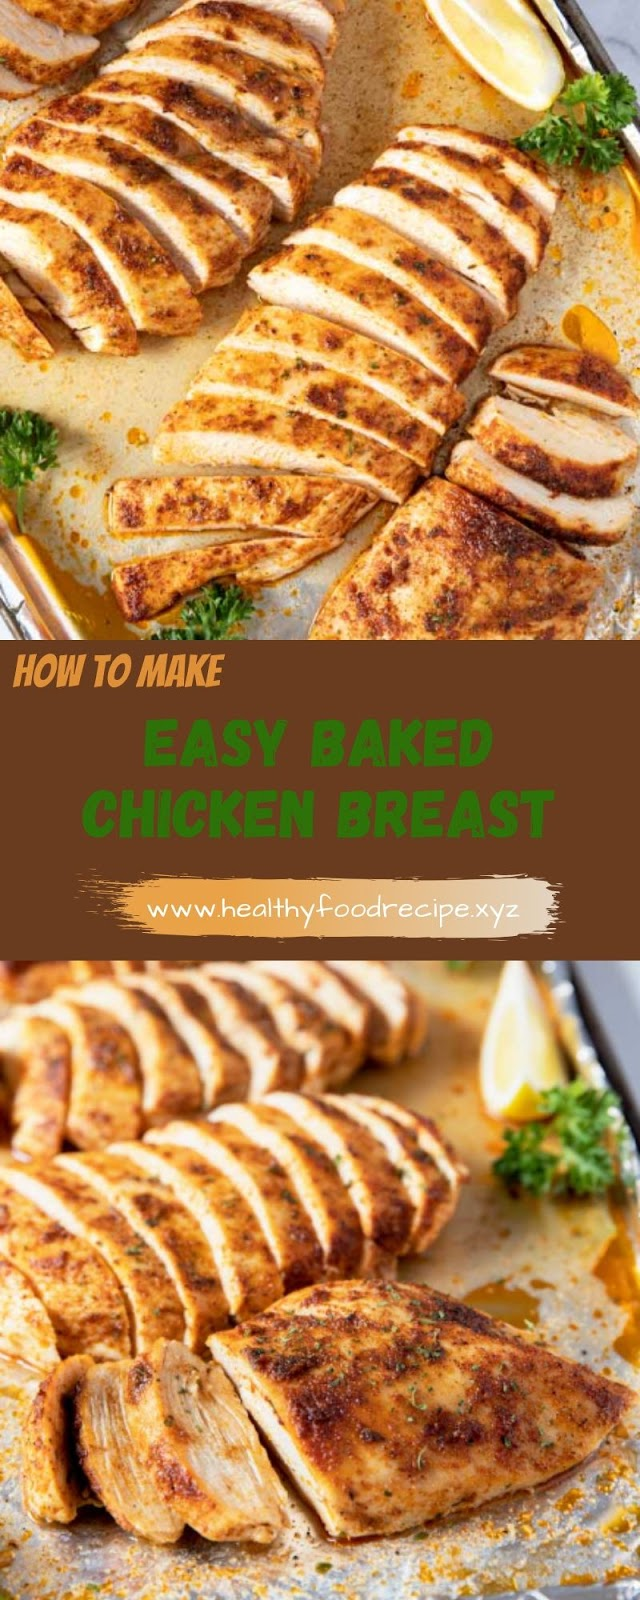 HOW TO MAKE EASY BAKED CHICKEN BREAST